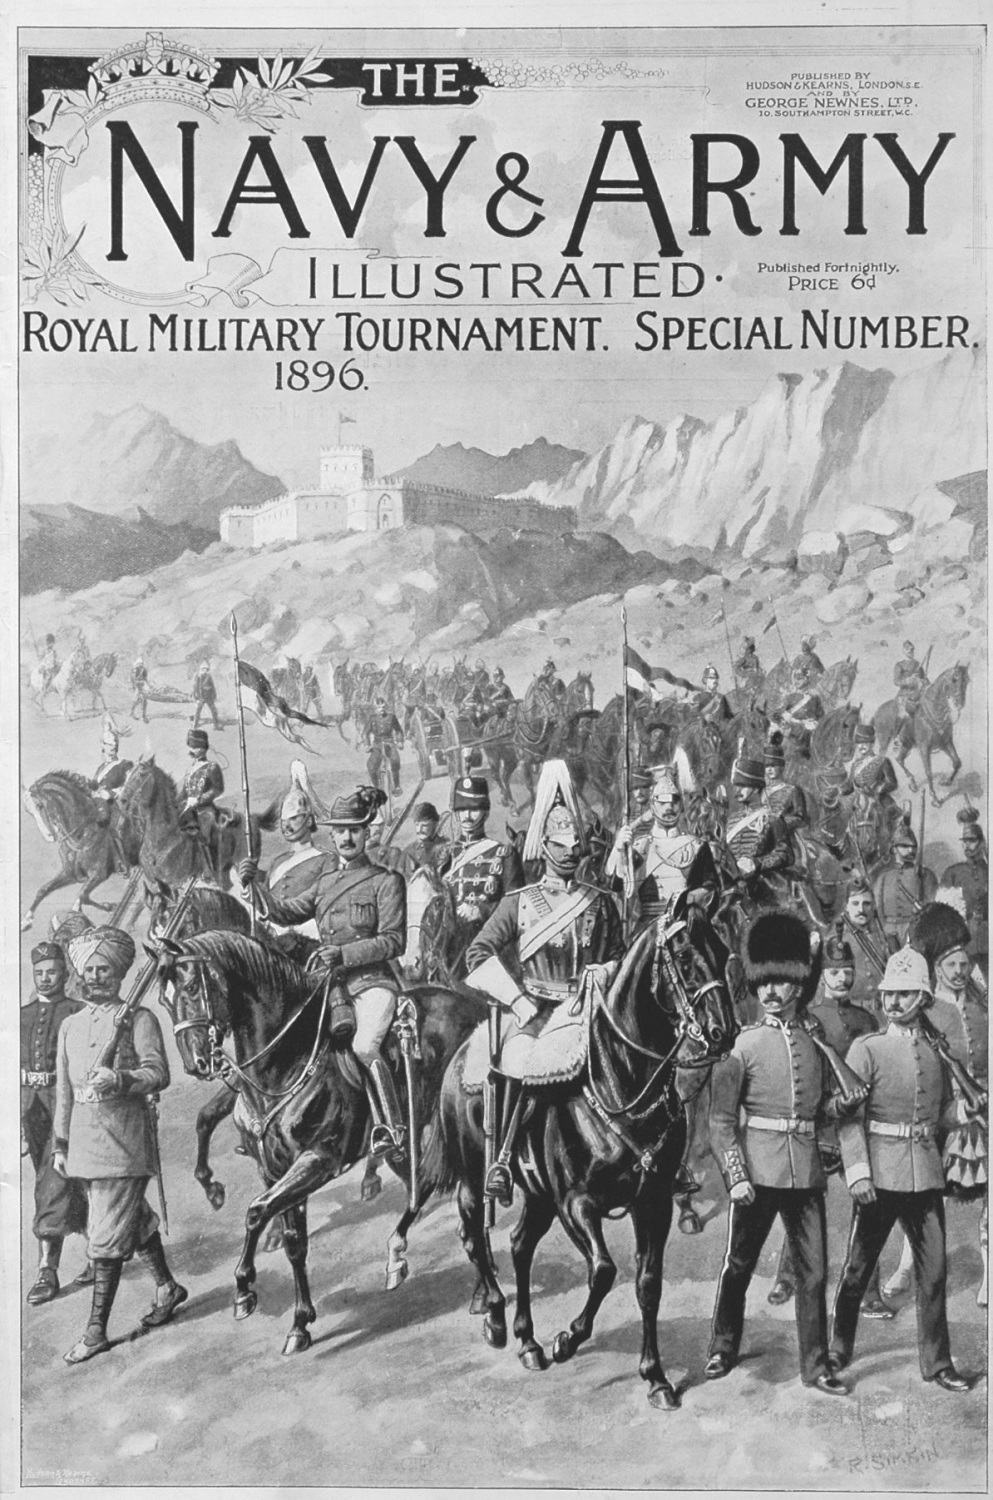 Navy & Army Illustrated. Royal Military Tournament. 1896.